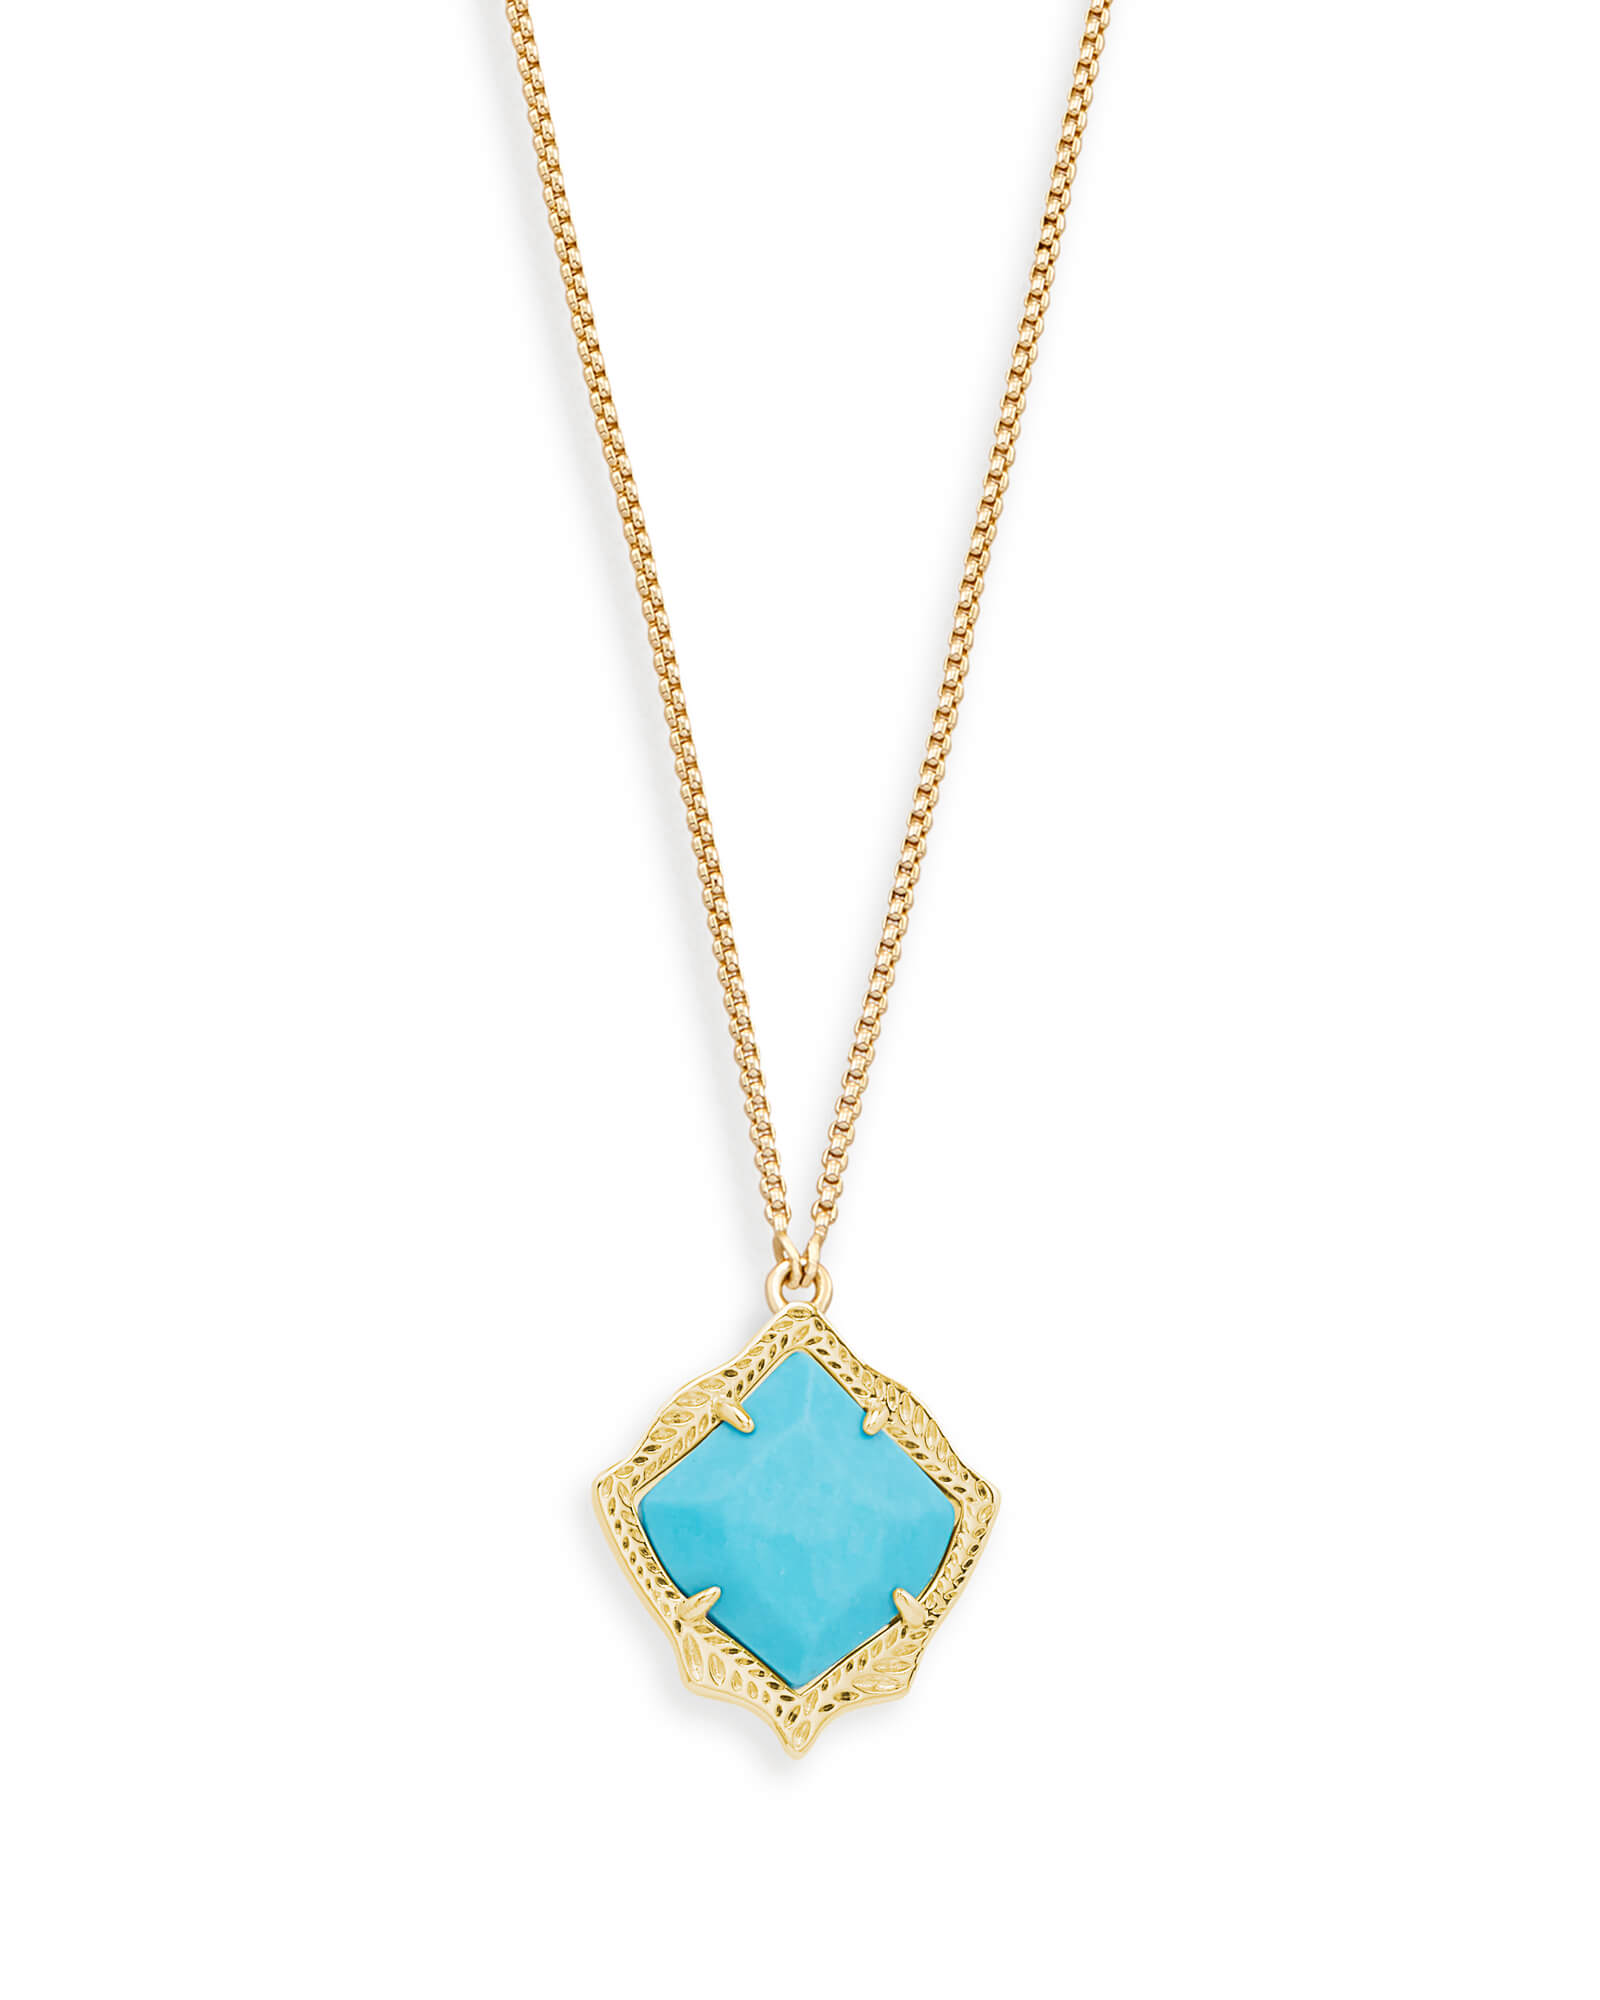 Kacey Long Pendant Necklace in Turquoise